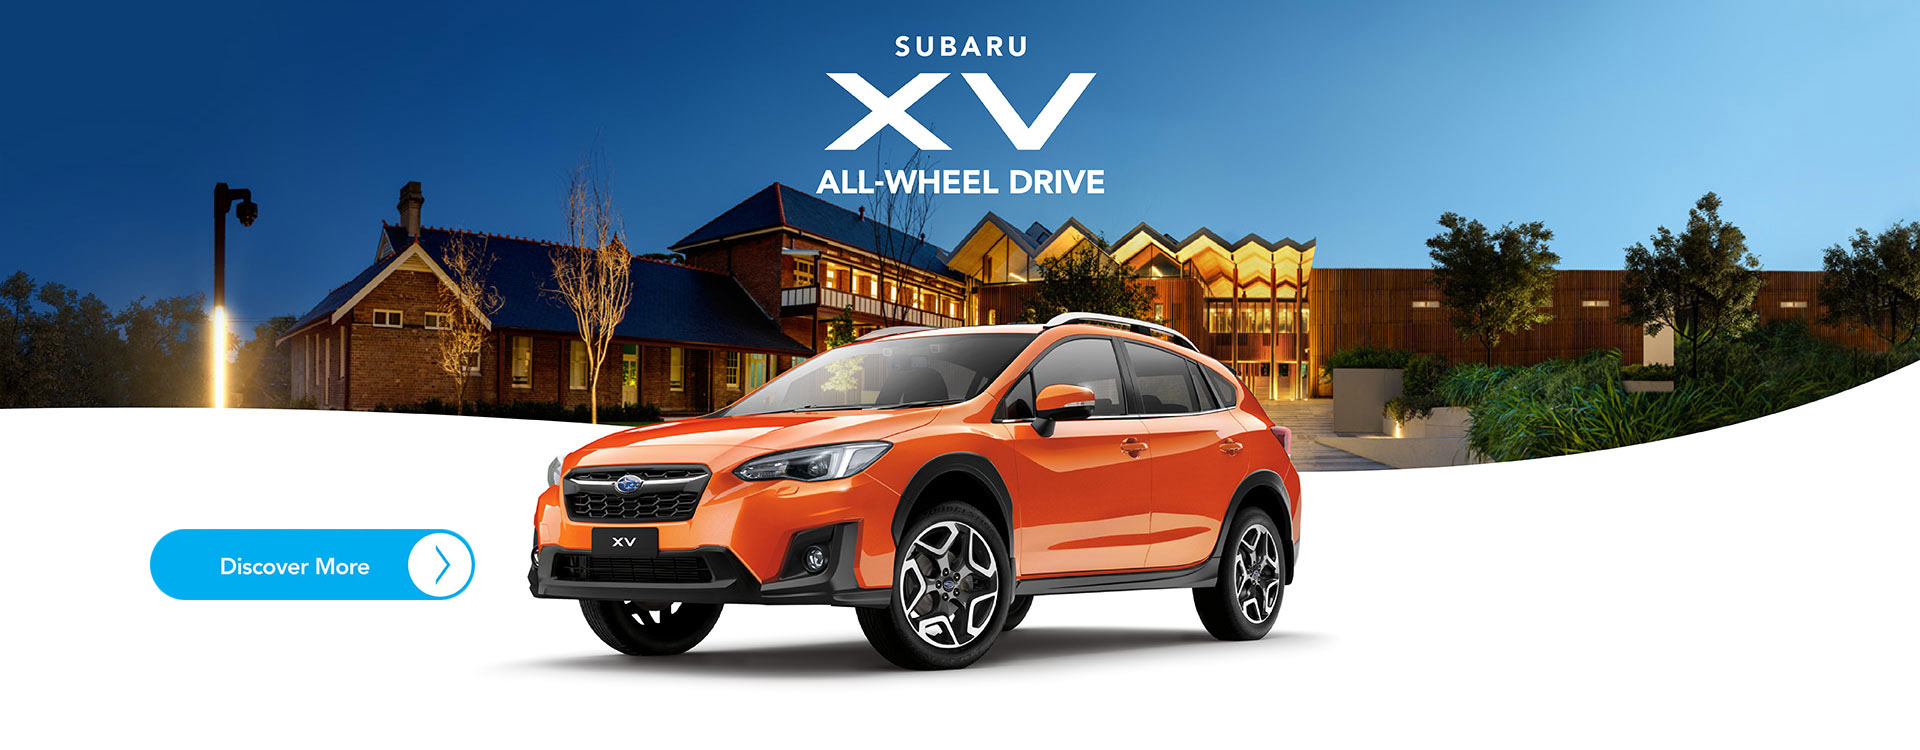 New Subaru XV, including Hybrid e-Boxer, now available at Cricks Tweed Subaru, Tweed Heads. Test Drive Today!